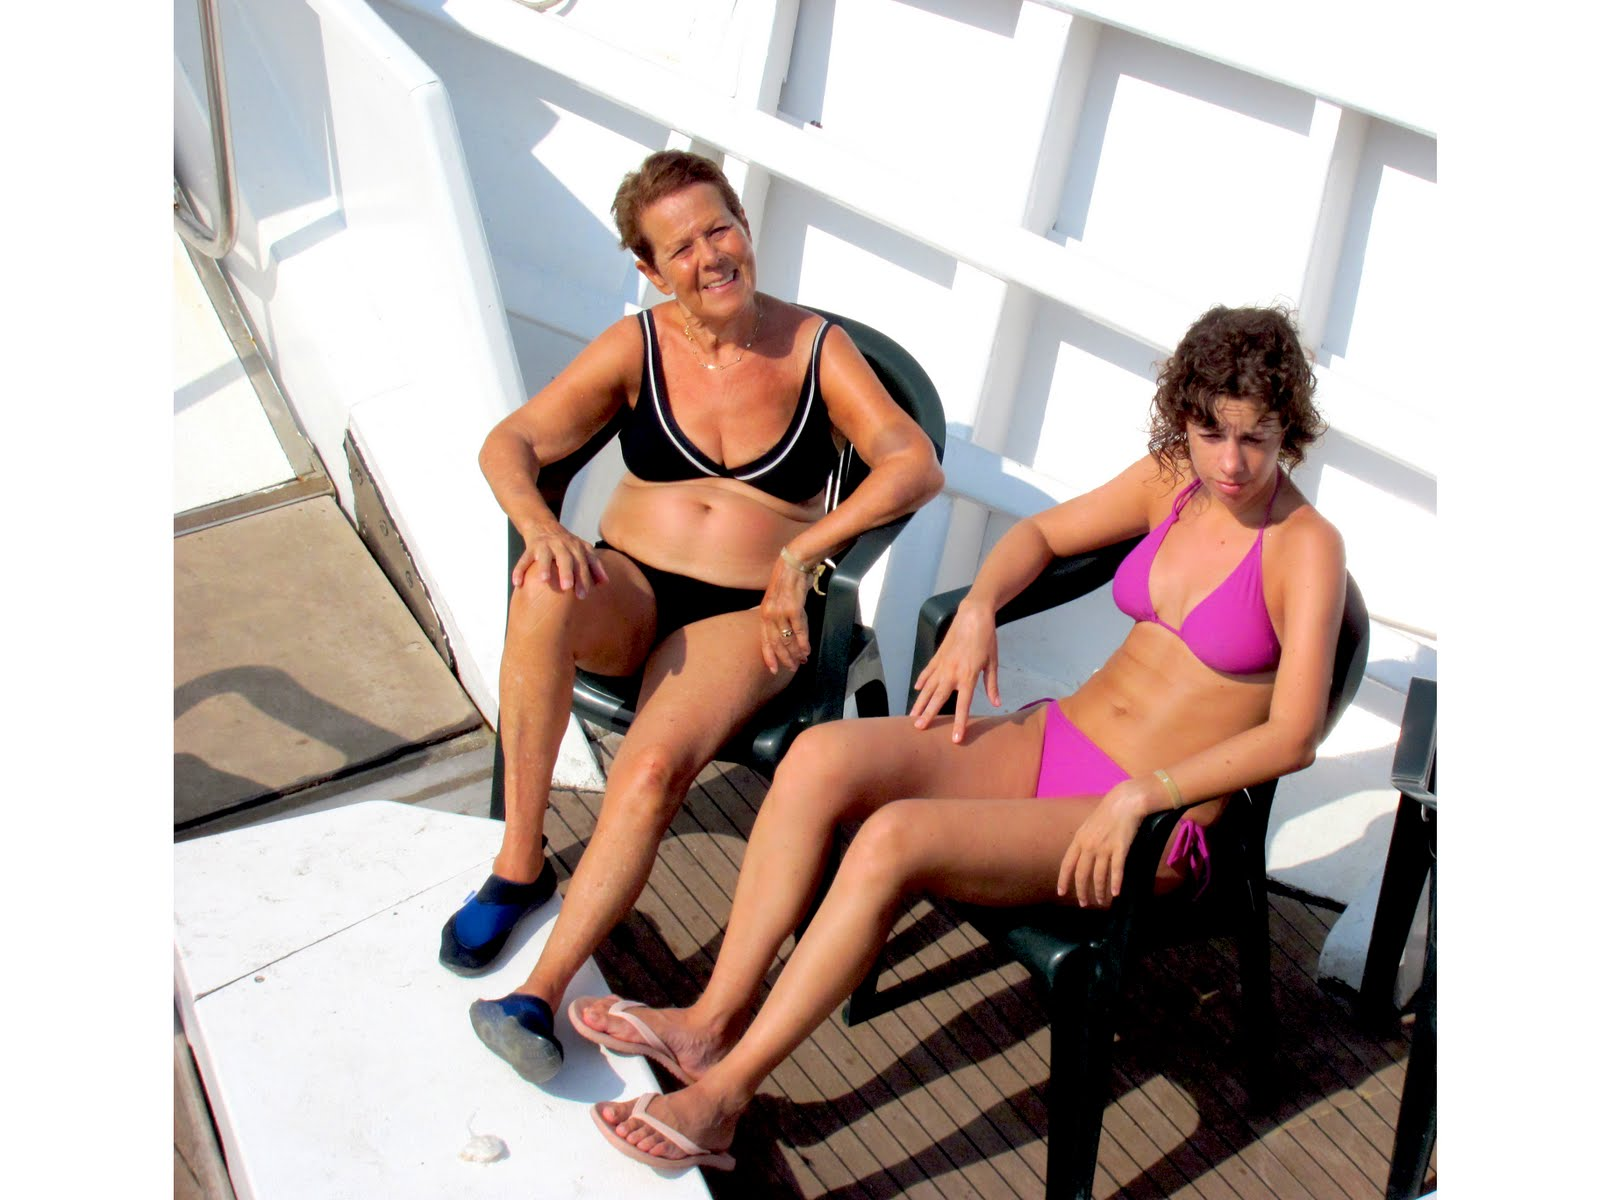 http://s-fashion-avenue.blogspot.it/2011/09/on-boat-with-my-family.html